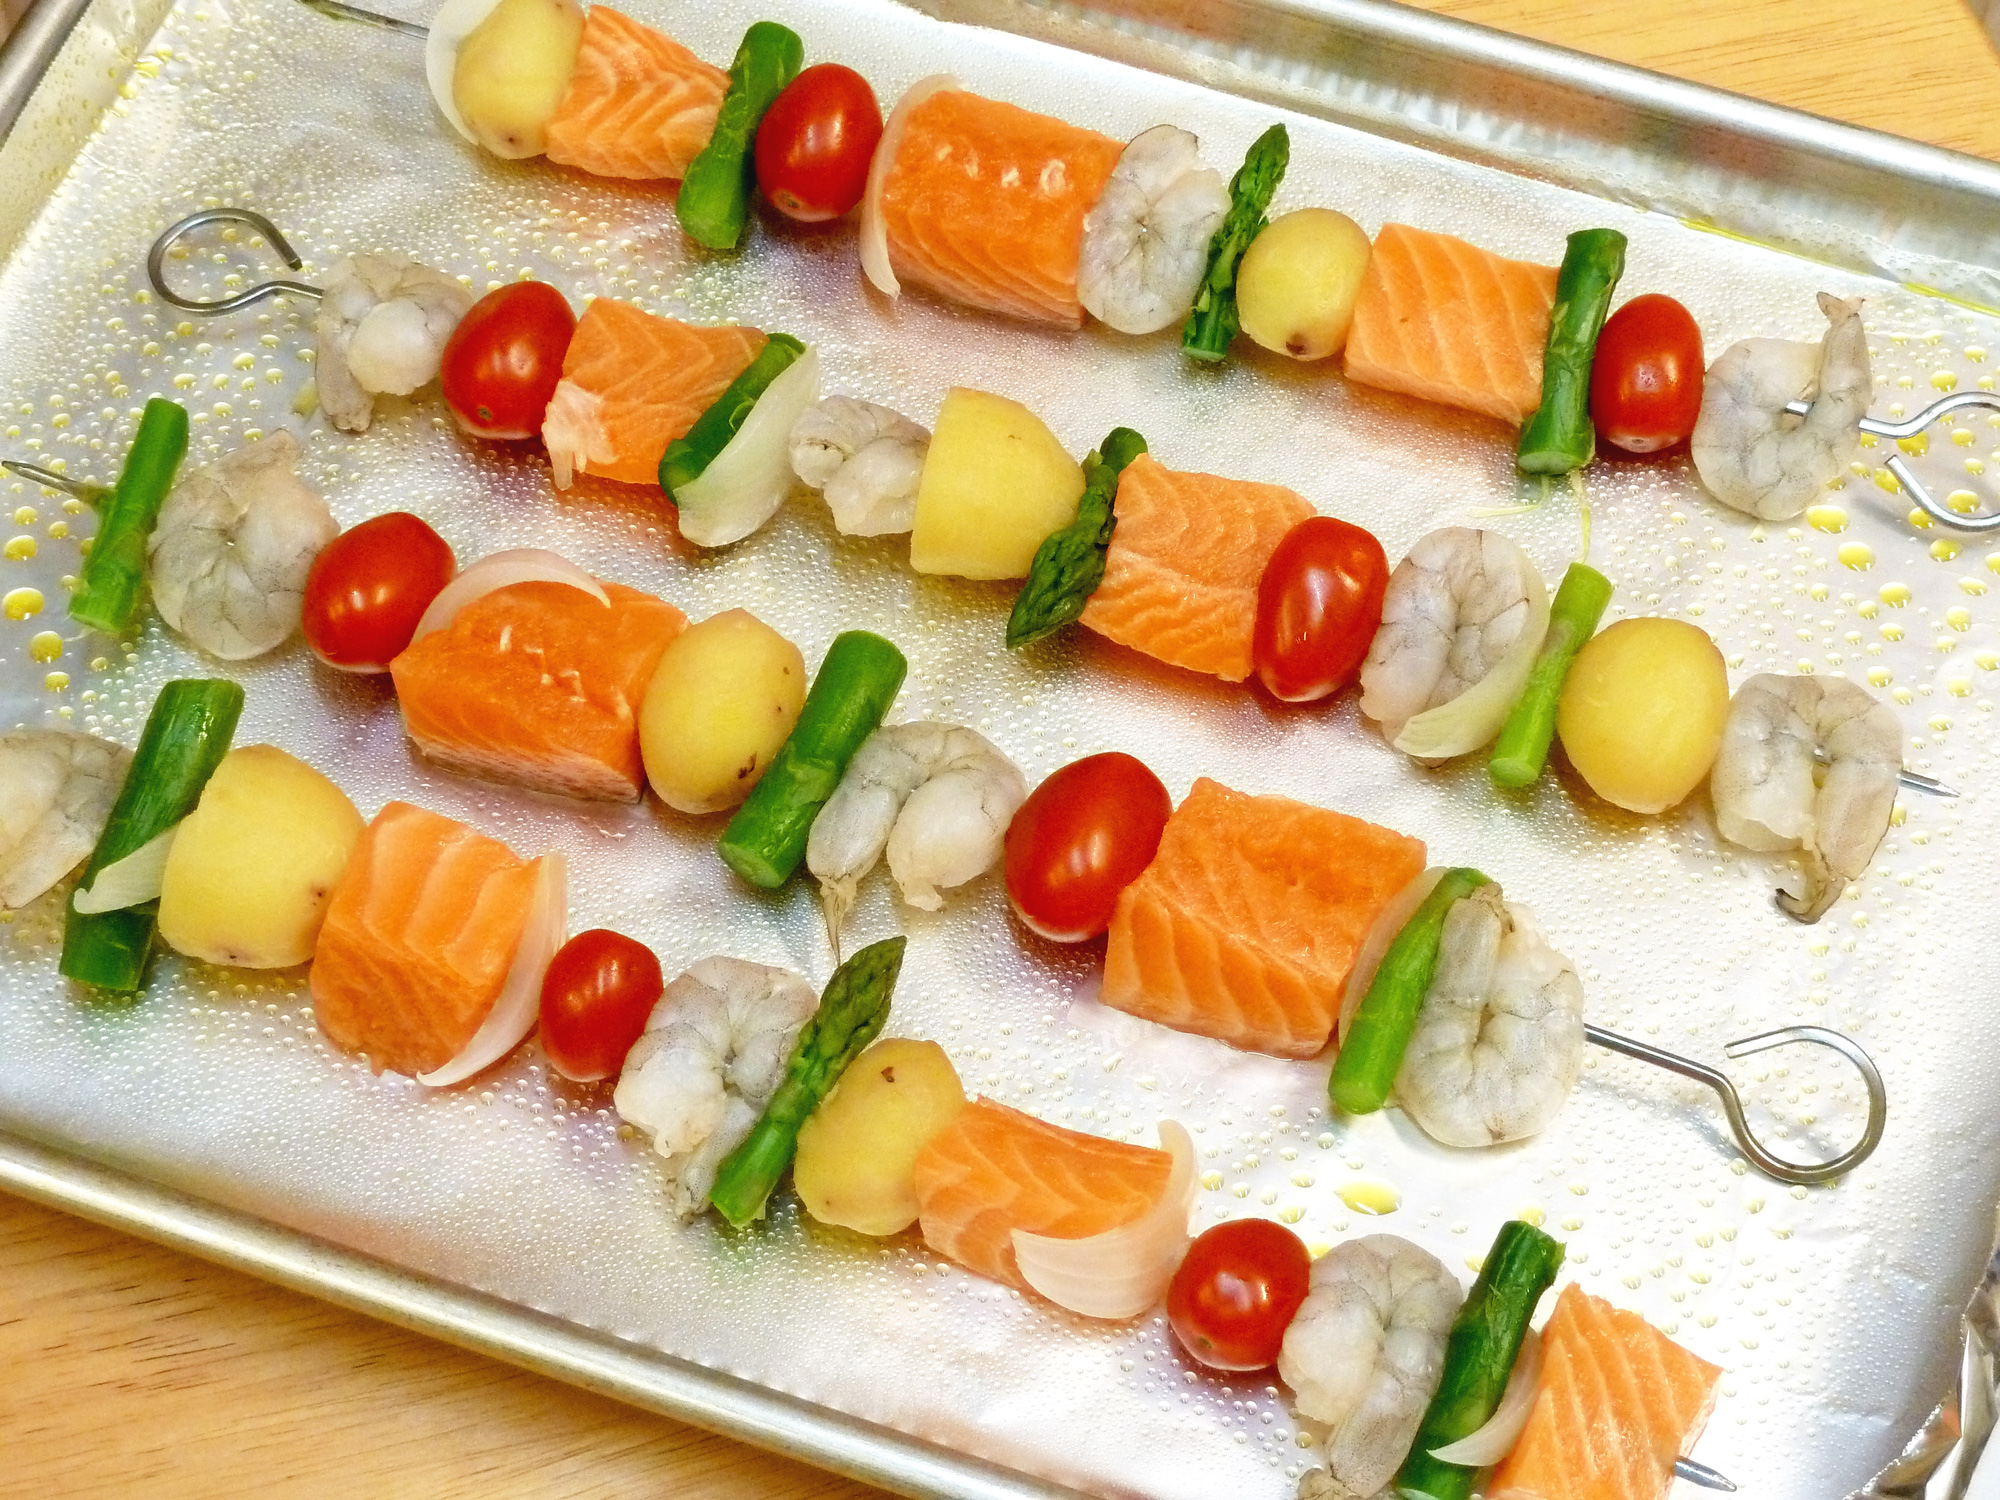 Colorful salmon, shrimp, and vegetables are threaded onto skewers, ready for basting with the special sauce.